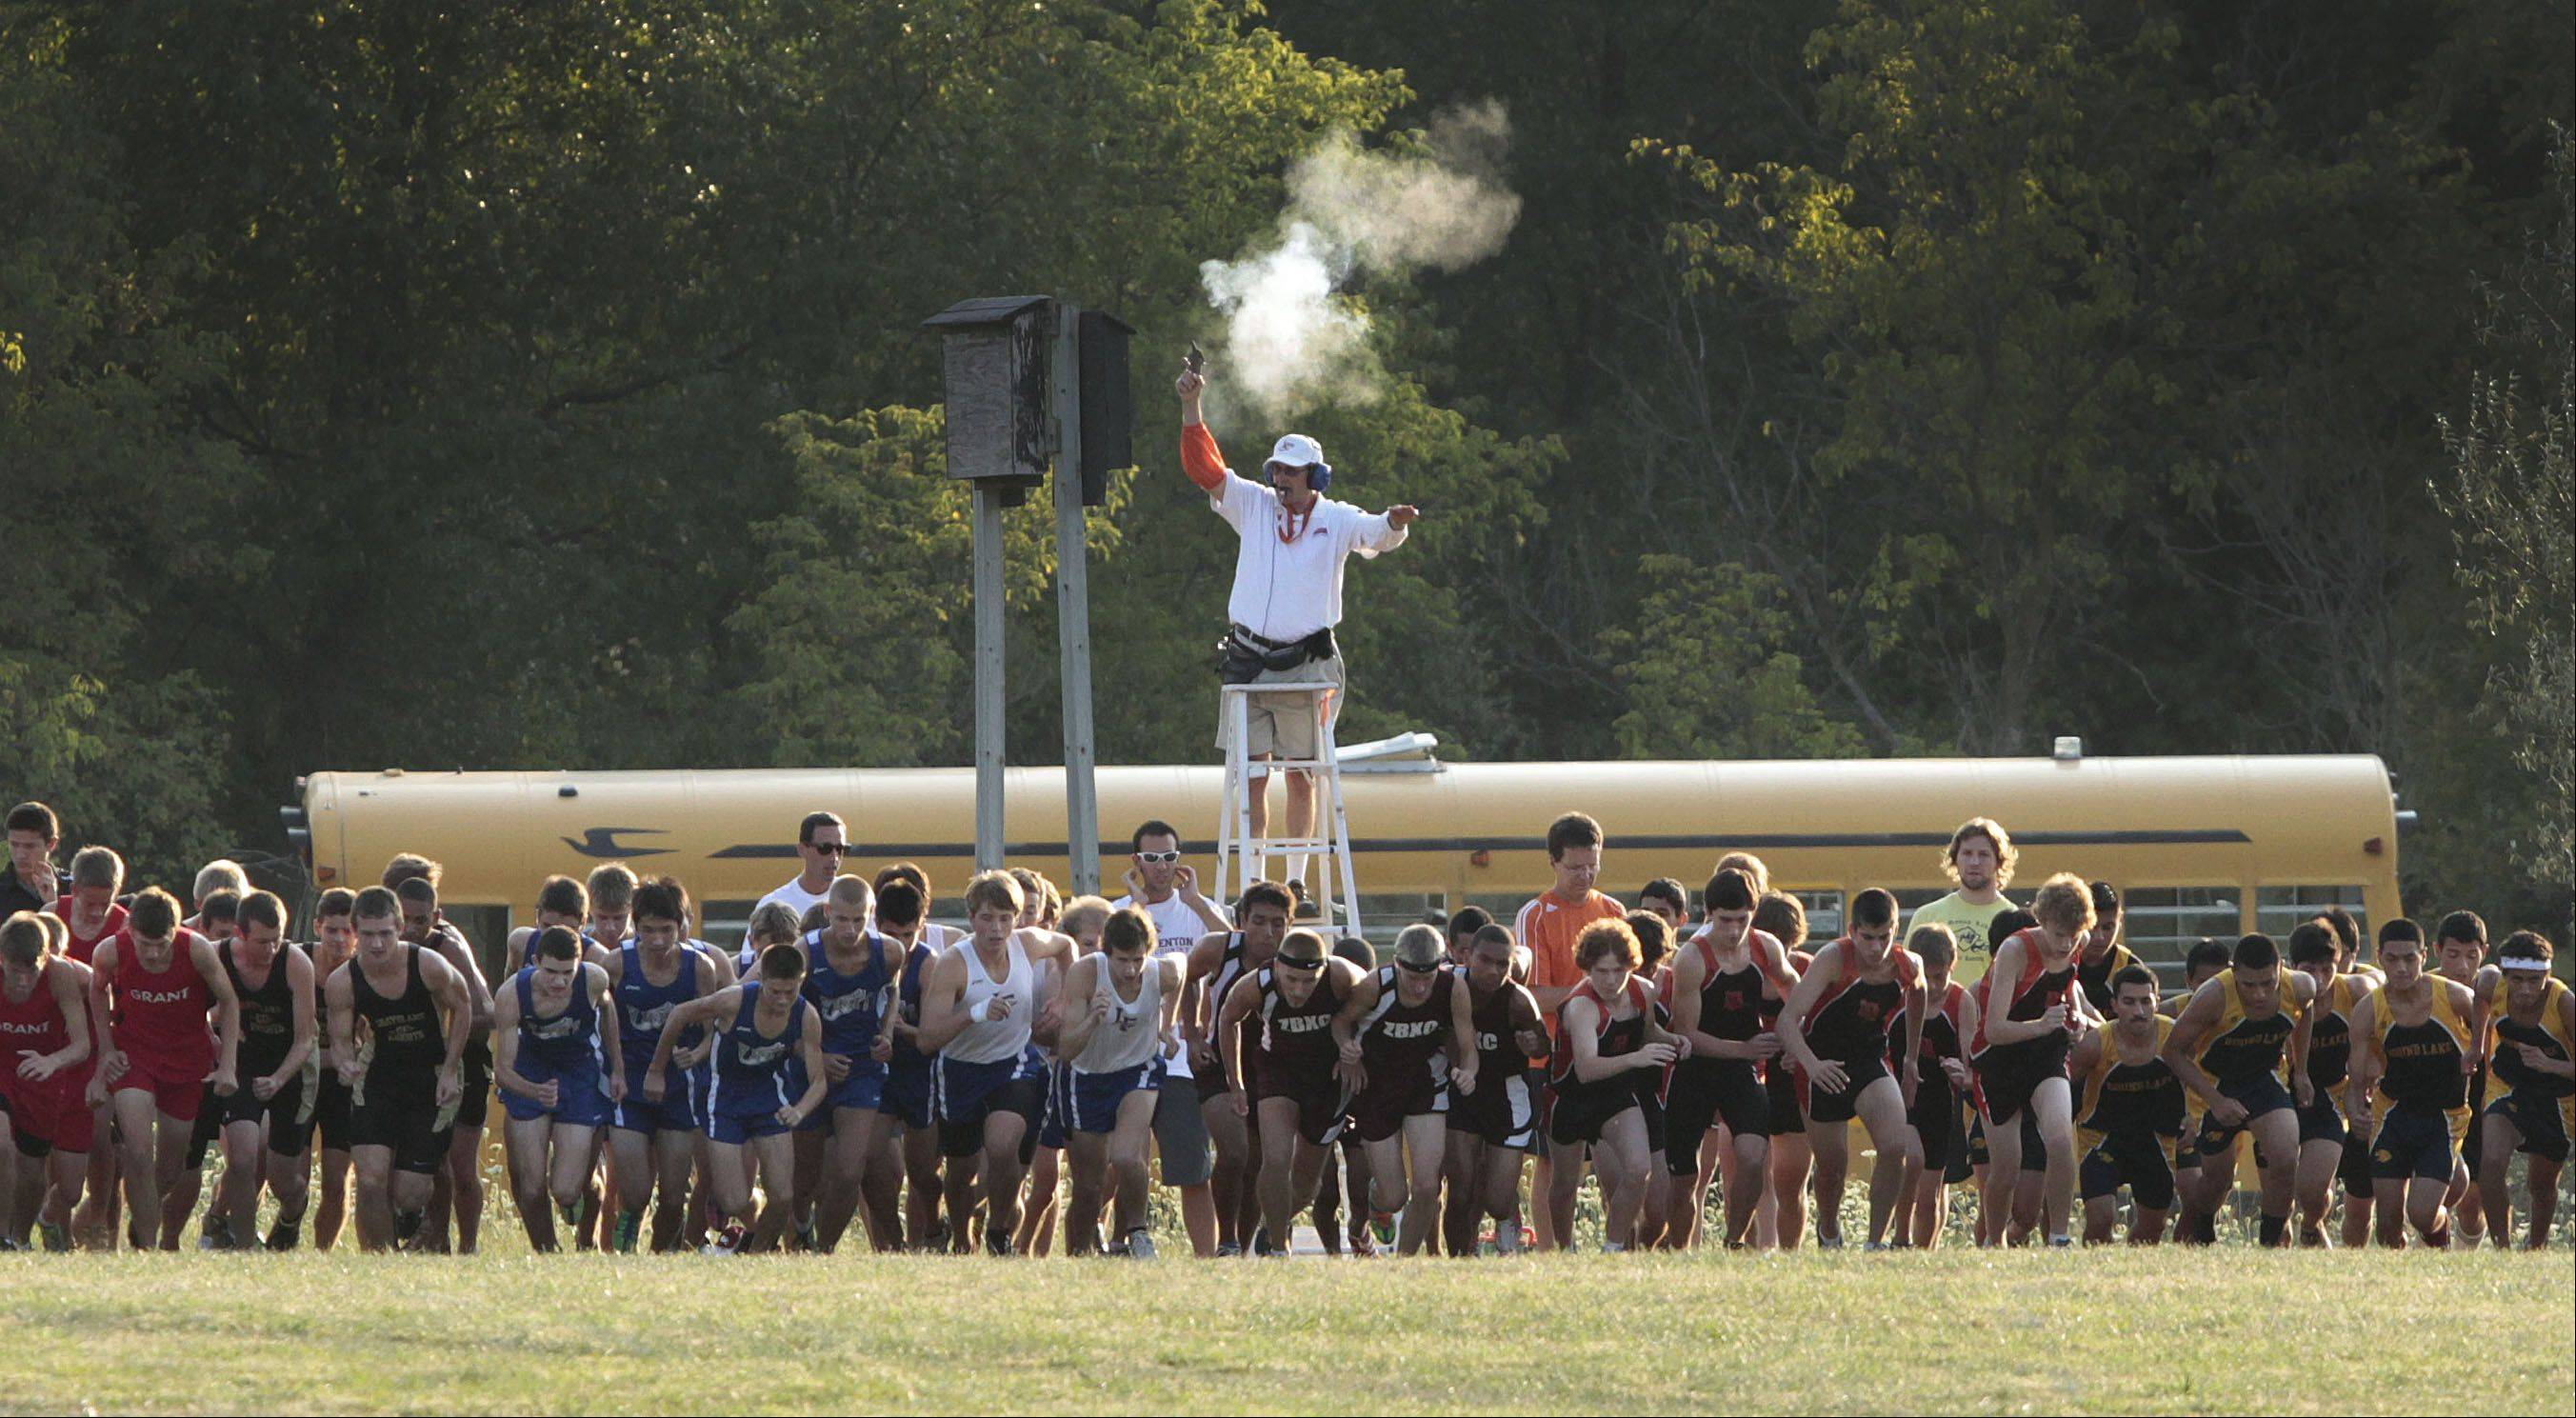 The starter signals the start of the Lake County boys cross country meet Wednesday at Lakewood Forest preserve near Wauconda.